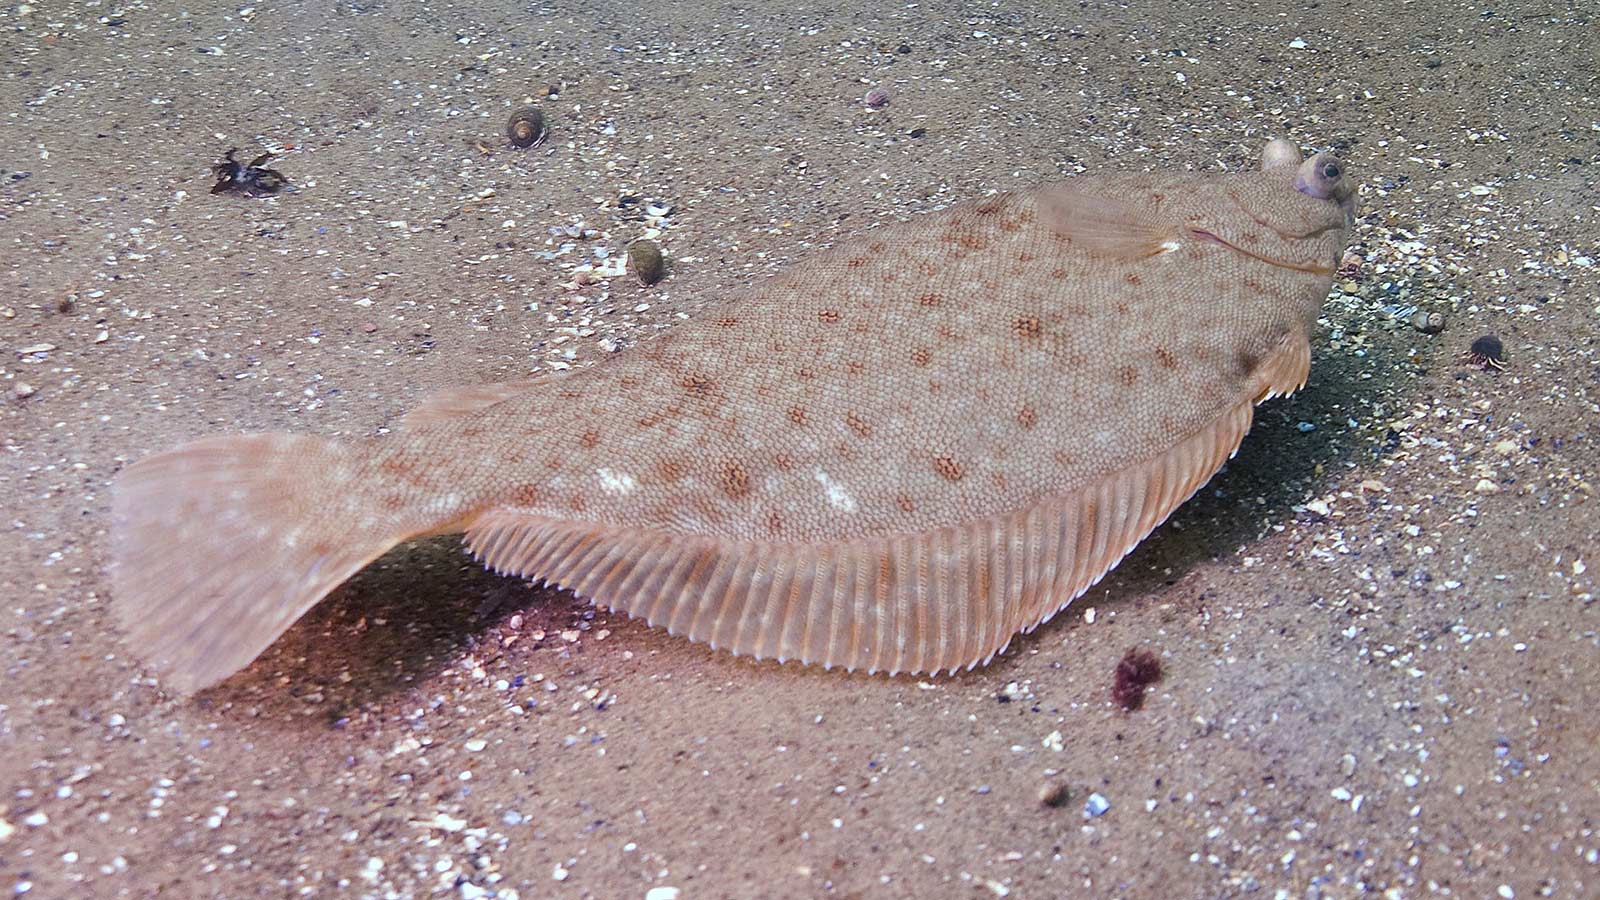 Image: American Museum of Natural History - a Flounder blending into its environment